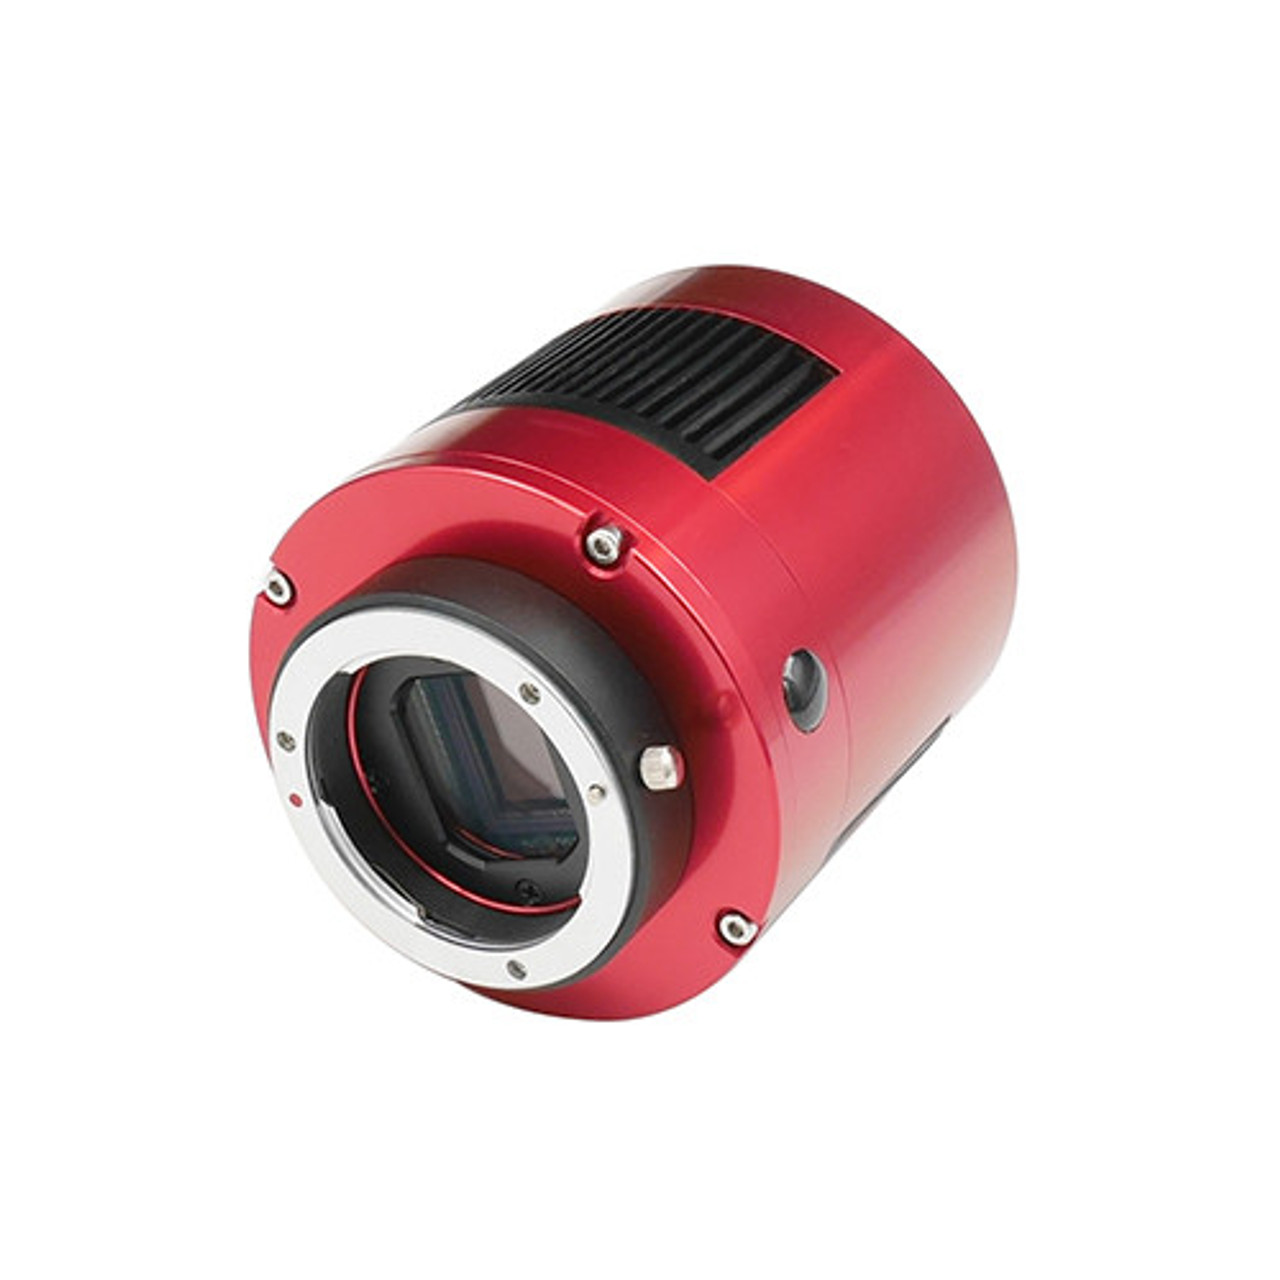 ZWO ASI1600MM Pro Cooled USB 3.0 Monochrome Astronomy Camera